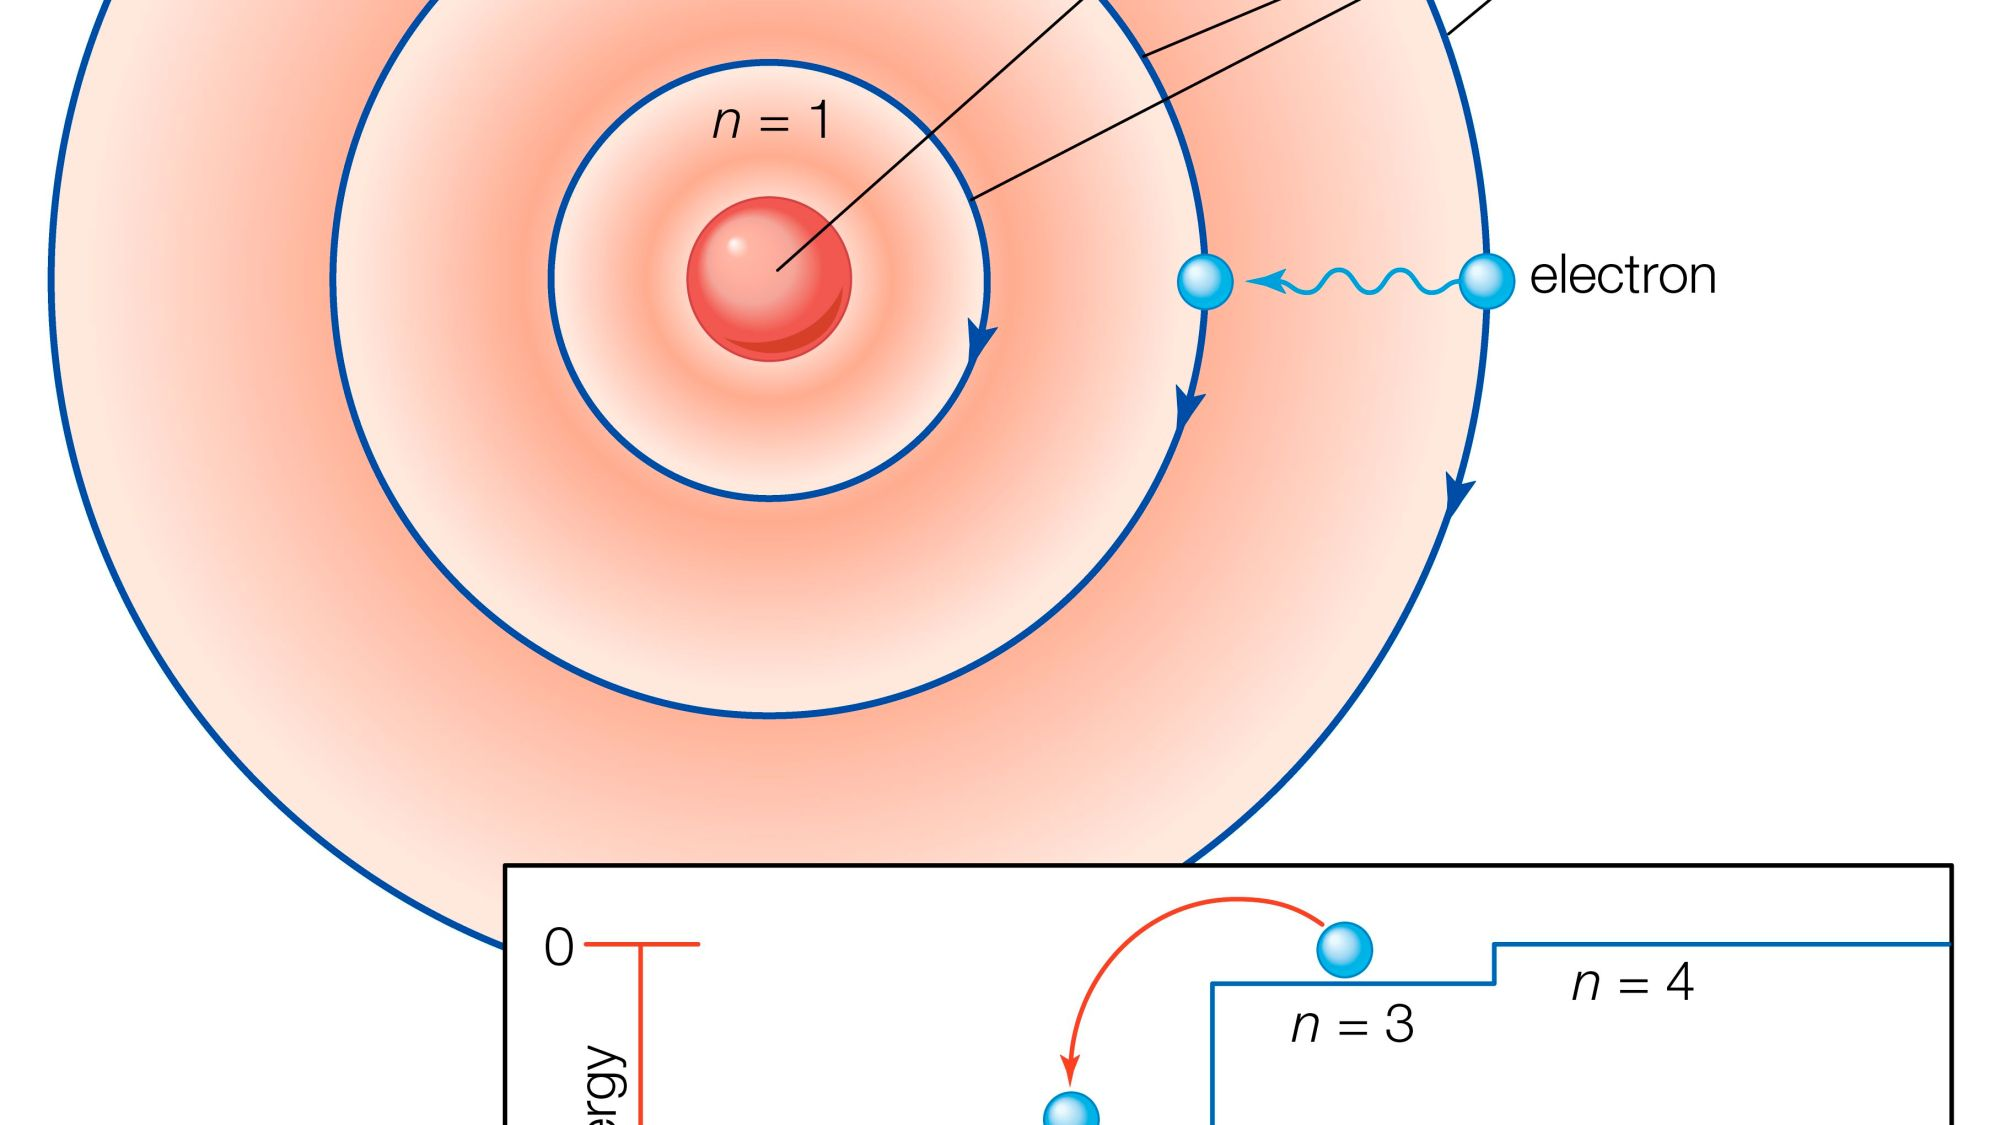 hight resolution of bohr diagram for sodium ion positive